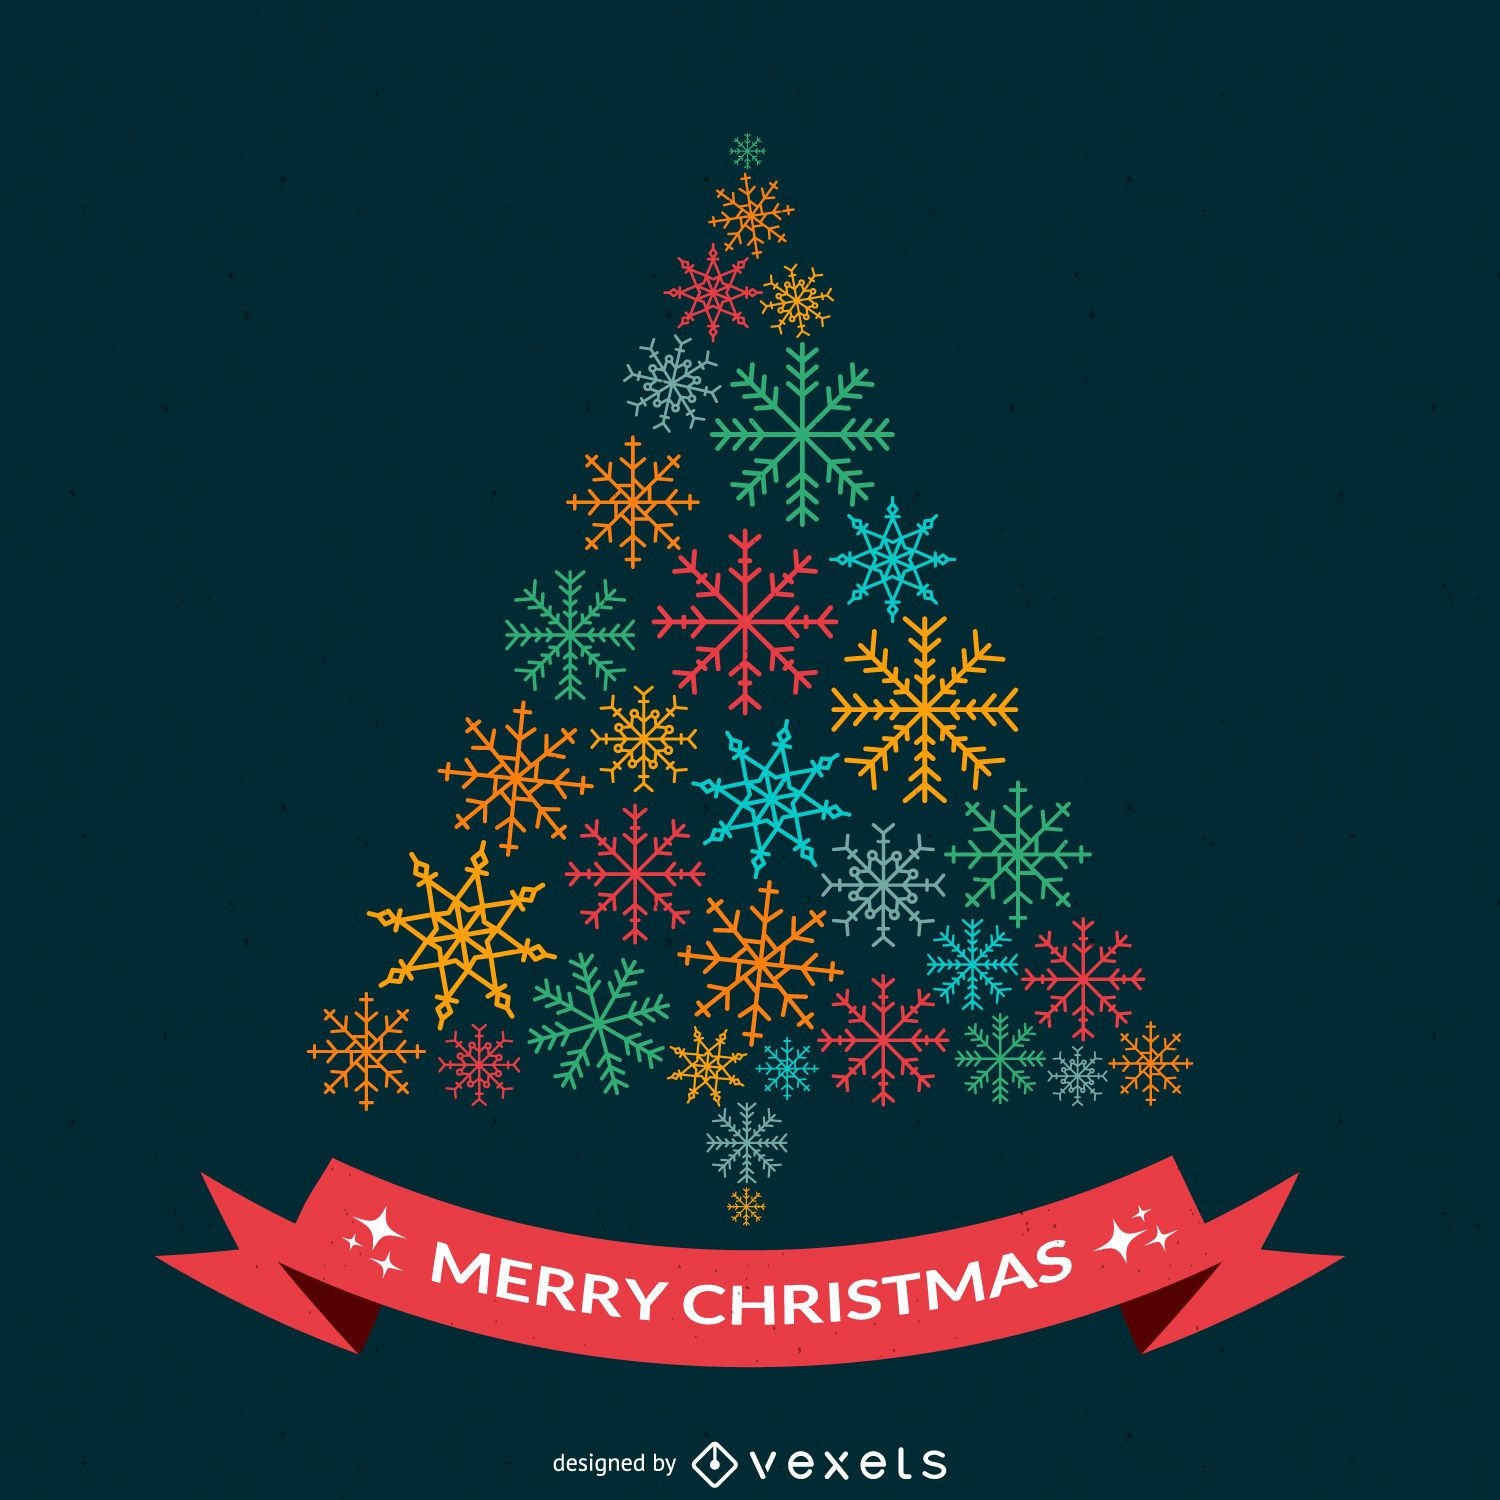 Christmas Design.Flat Christmas Design With Snowflakes Vector Download